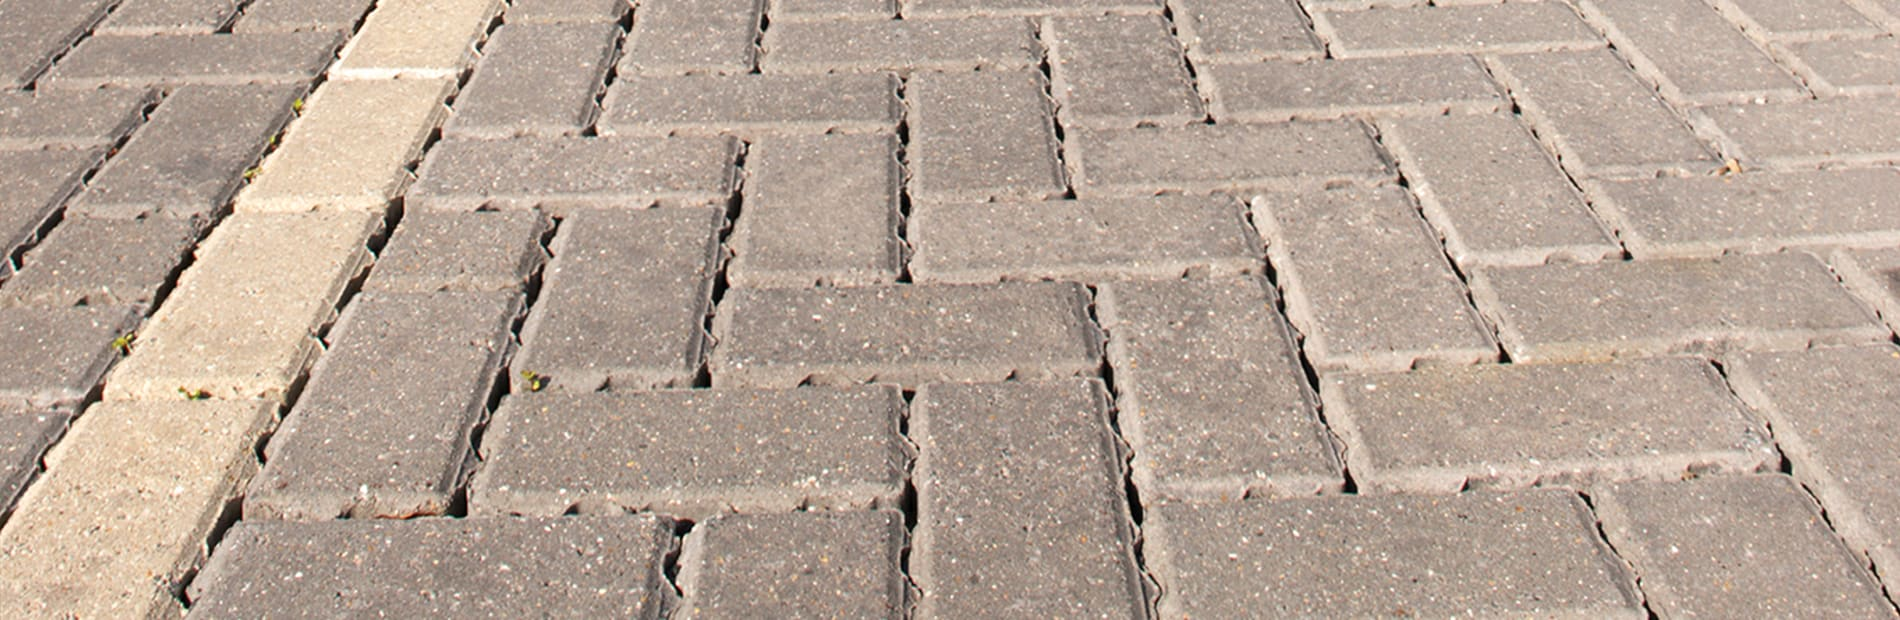 Block paving in bracken laid in a car park outside a shopping.